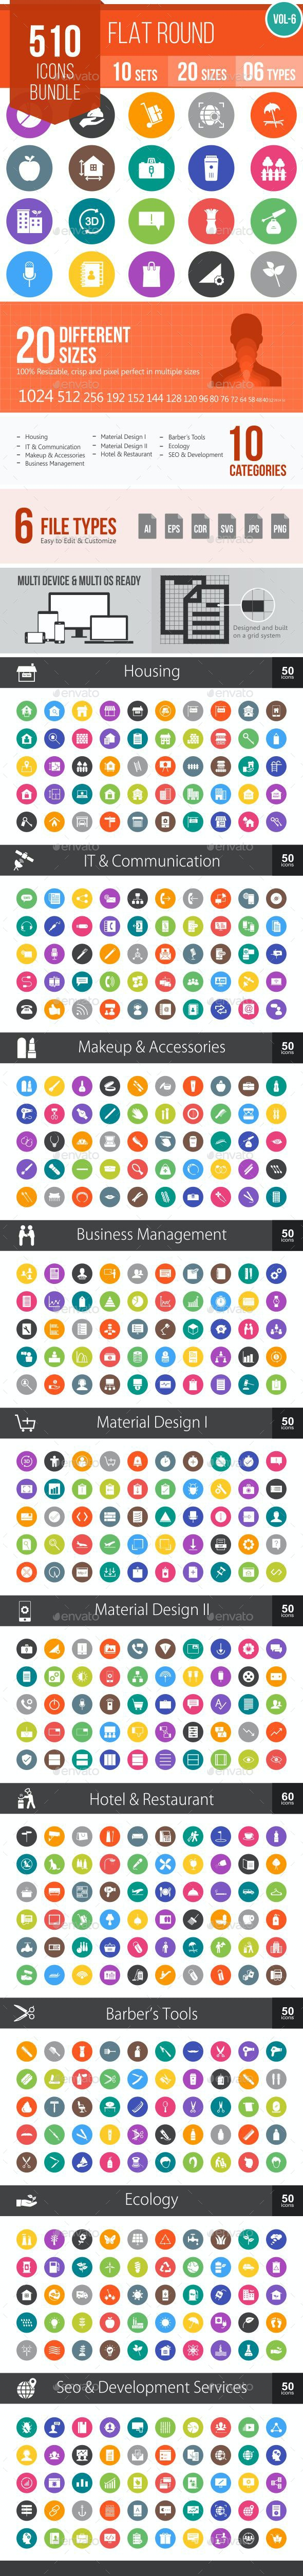 510 Vector Colorful Round Flat Icons Bundle - Icons